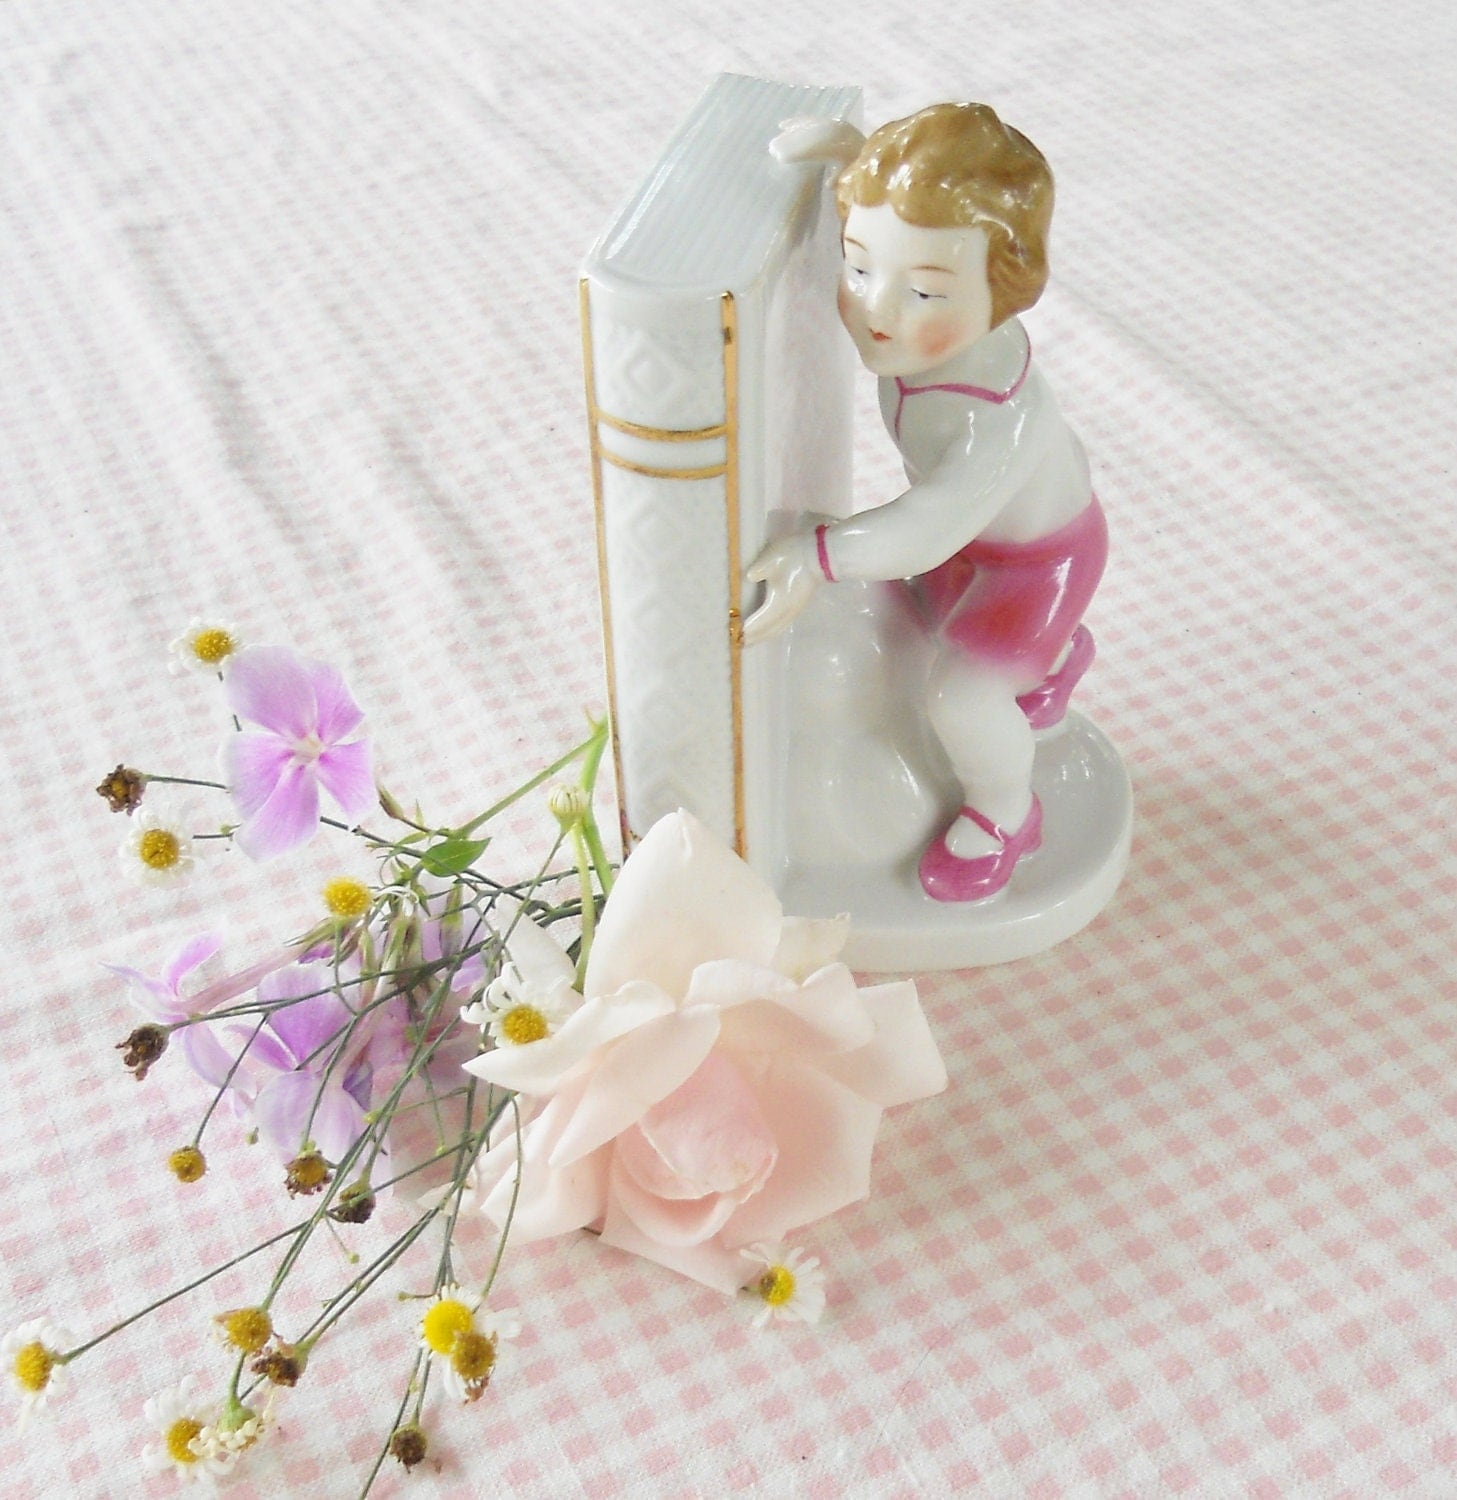 Boy and Book Figurine Bookend - Made in Germany - Vintage, French Decor, Farmhouse, Christmas, Gift, Wedding, Shabby Chic